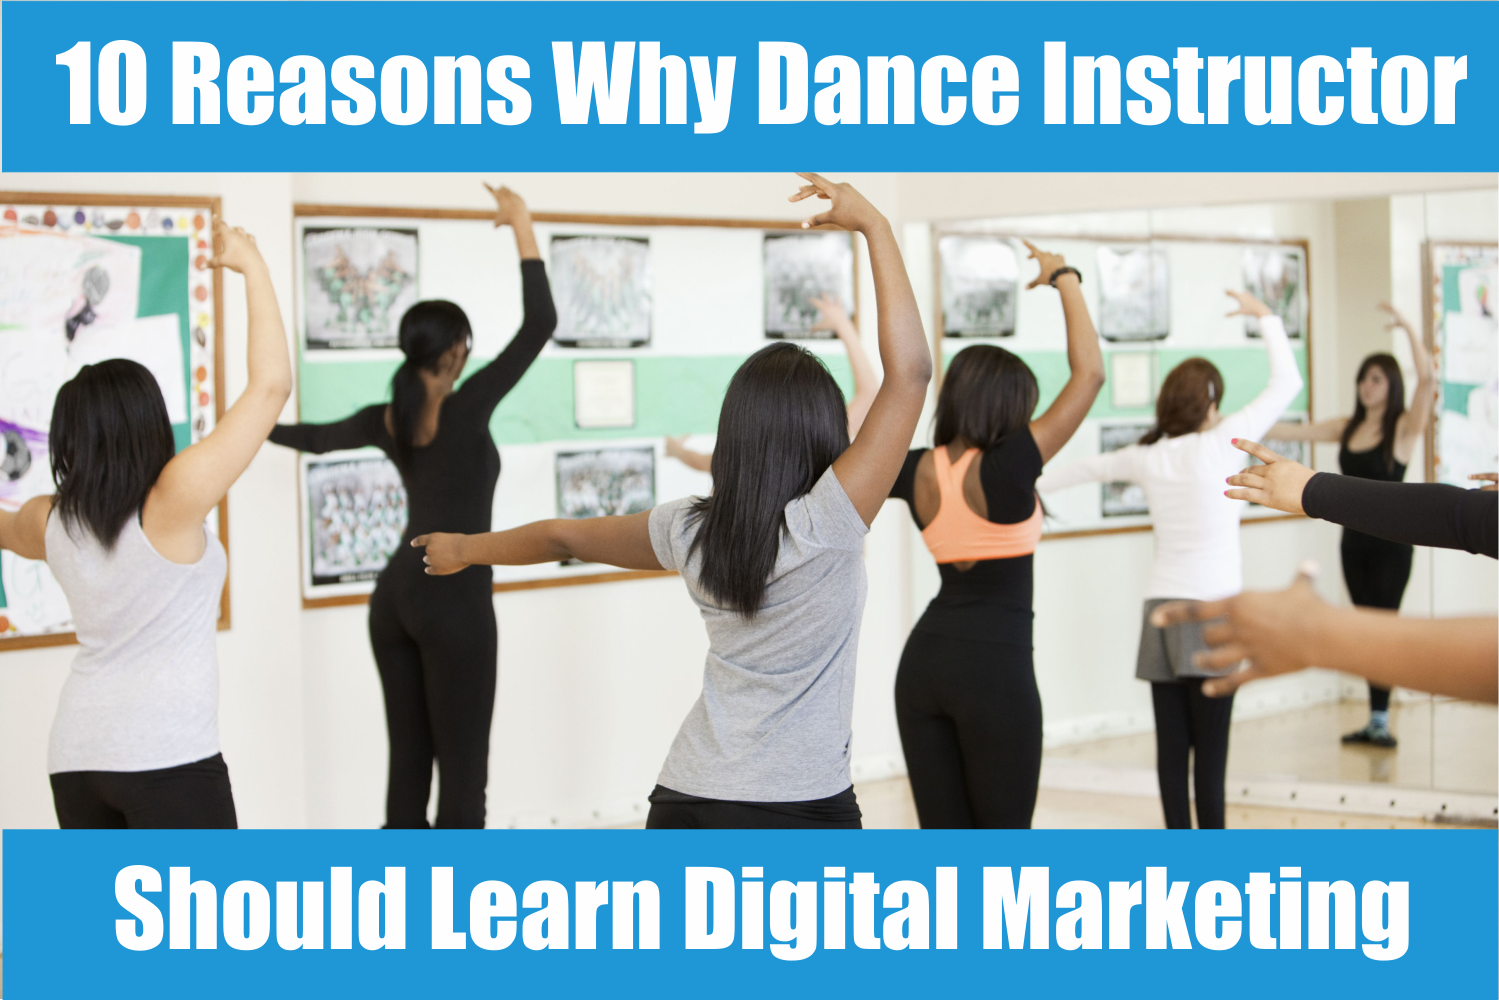 10 Reasons Why Dance Instructor Should Learn Digital Marketing